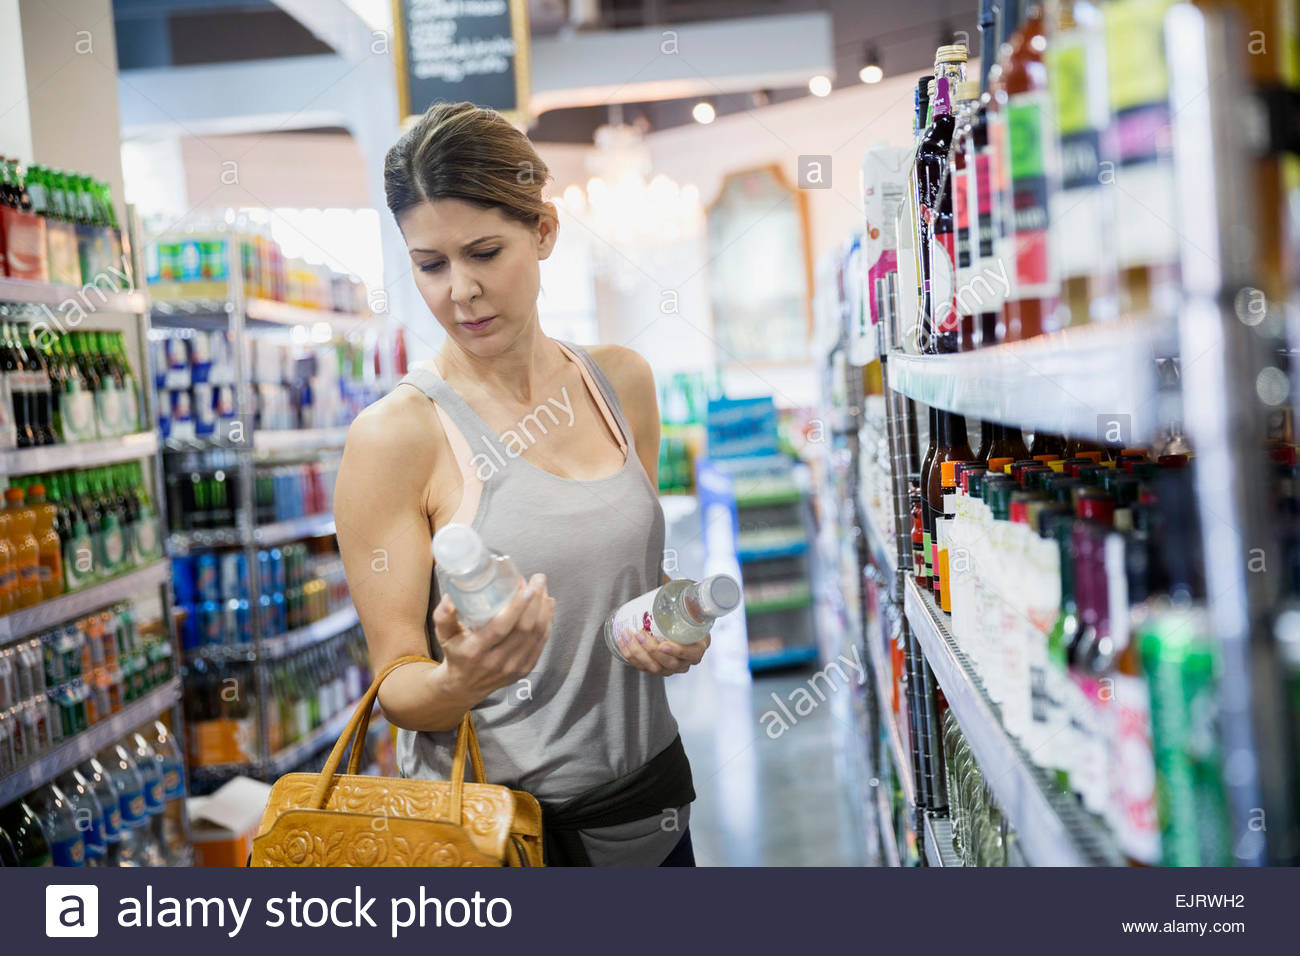 Woman reading labels on bottles in grocery store - Stock Image